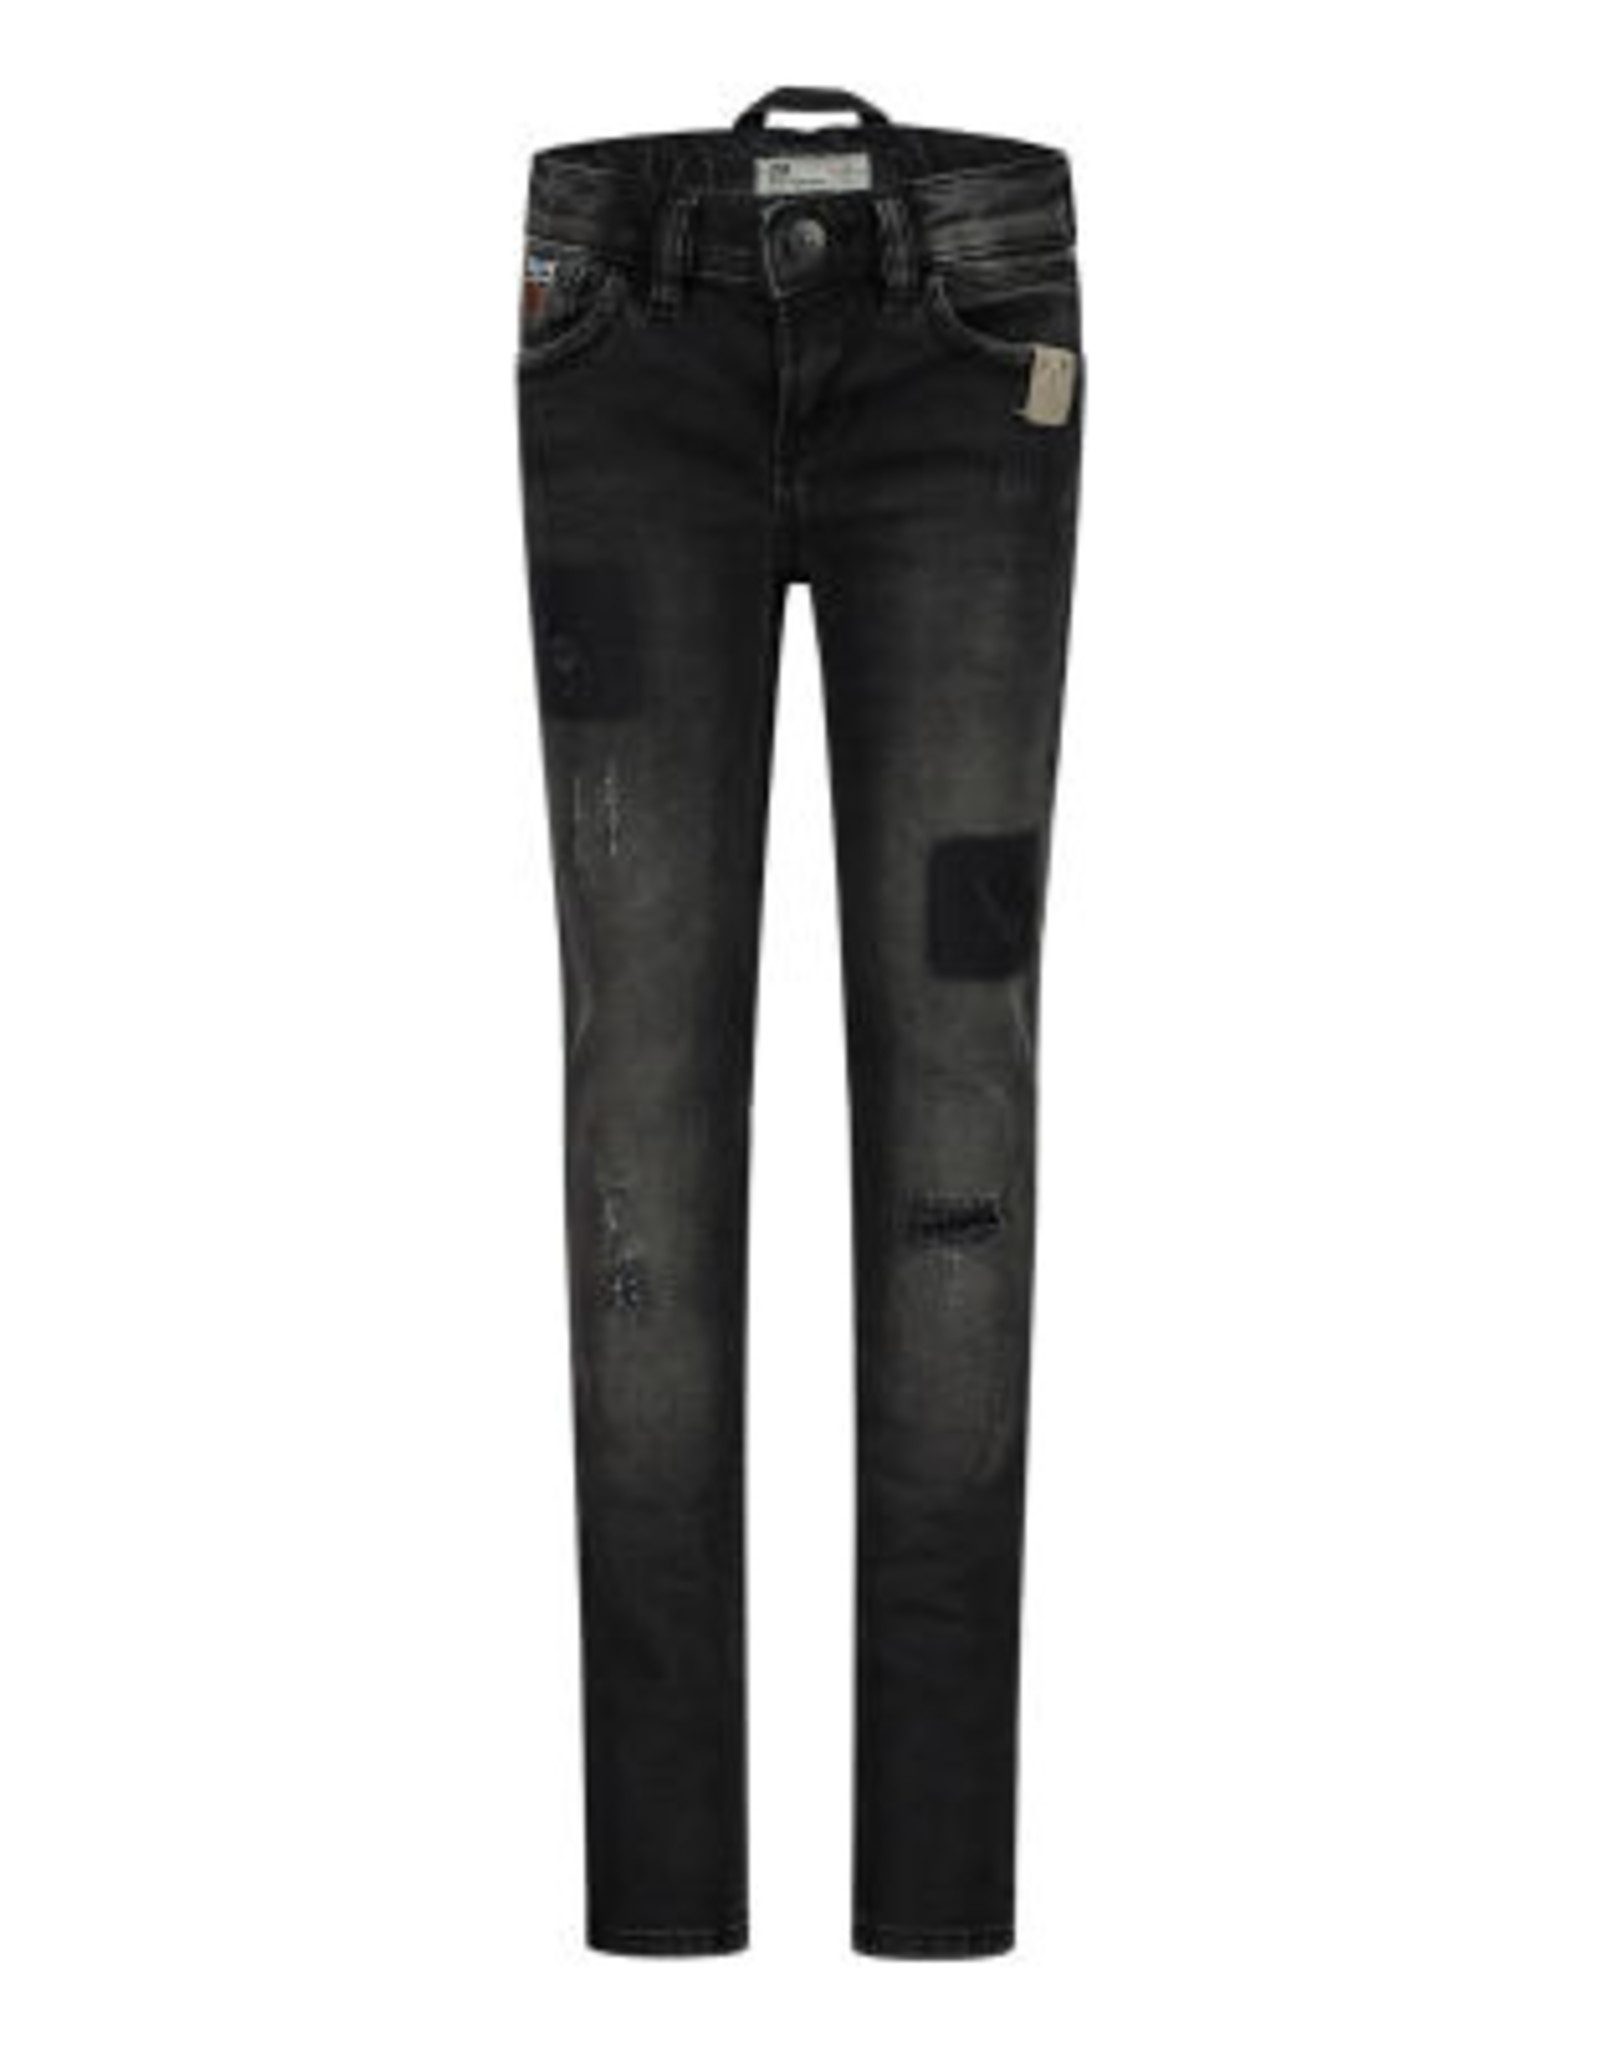 LTB Jeans LTB boys jeans Cayle Raines wash